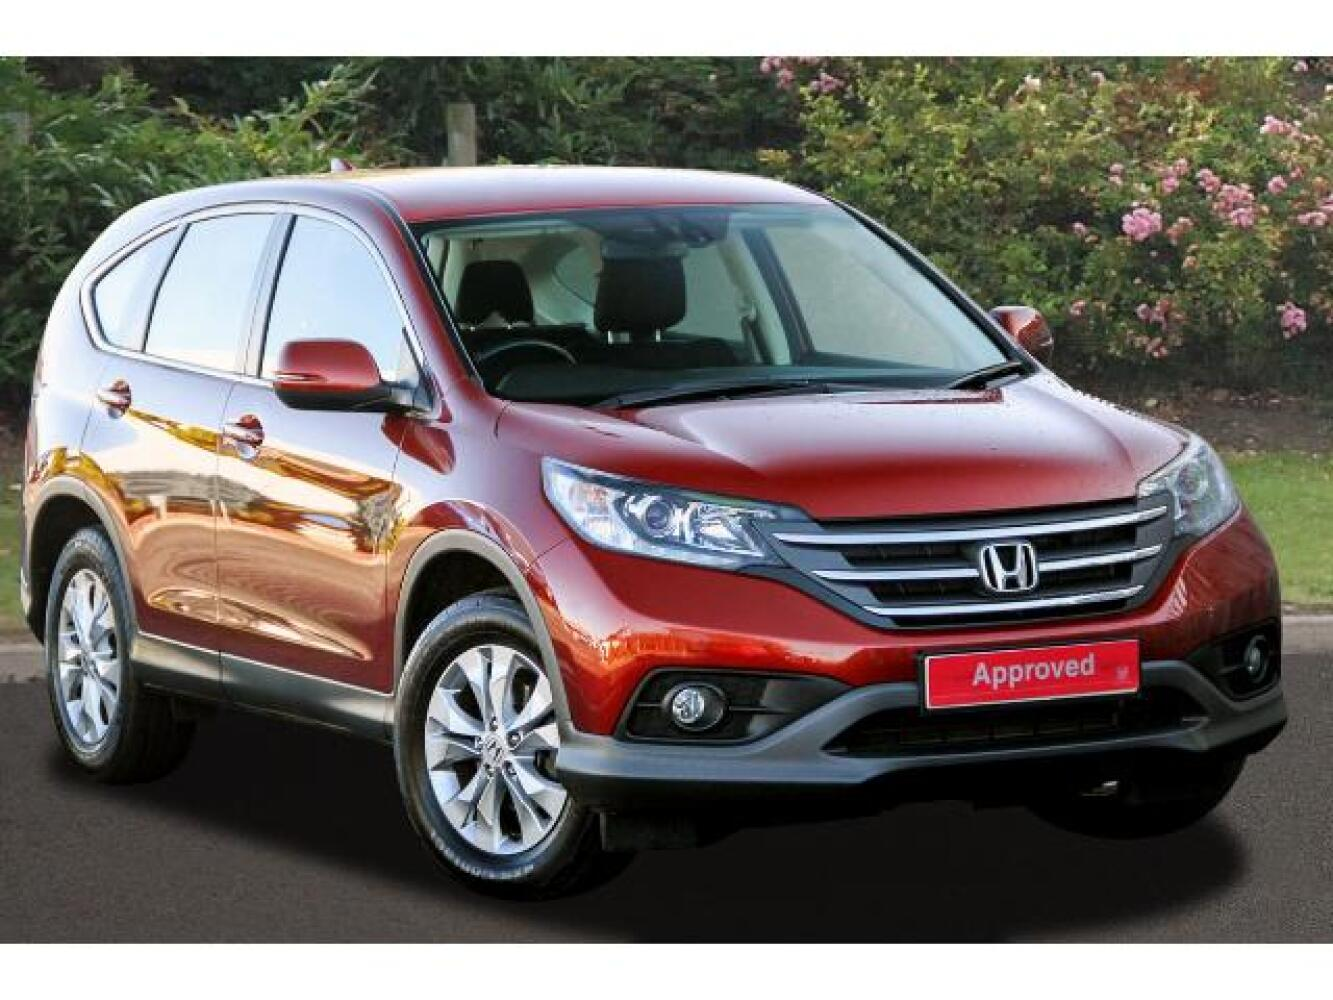 used honda cr v 2 0 i vtec se 5dr 2wd petrol estate for sale vertu honda. Black Bedroom Furniture Sets. Home Design Ideas